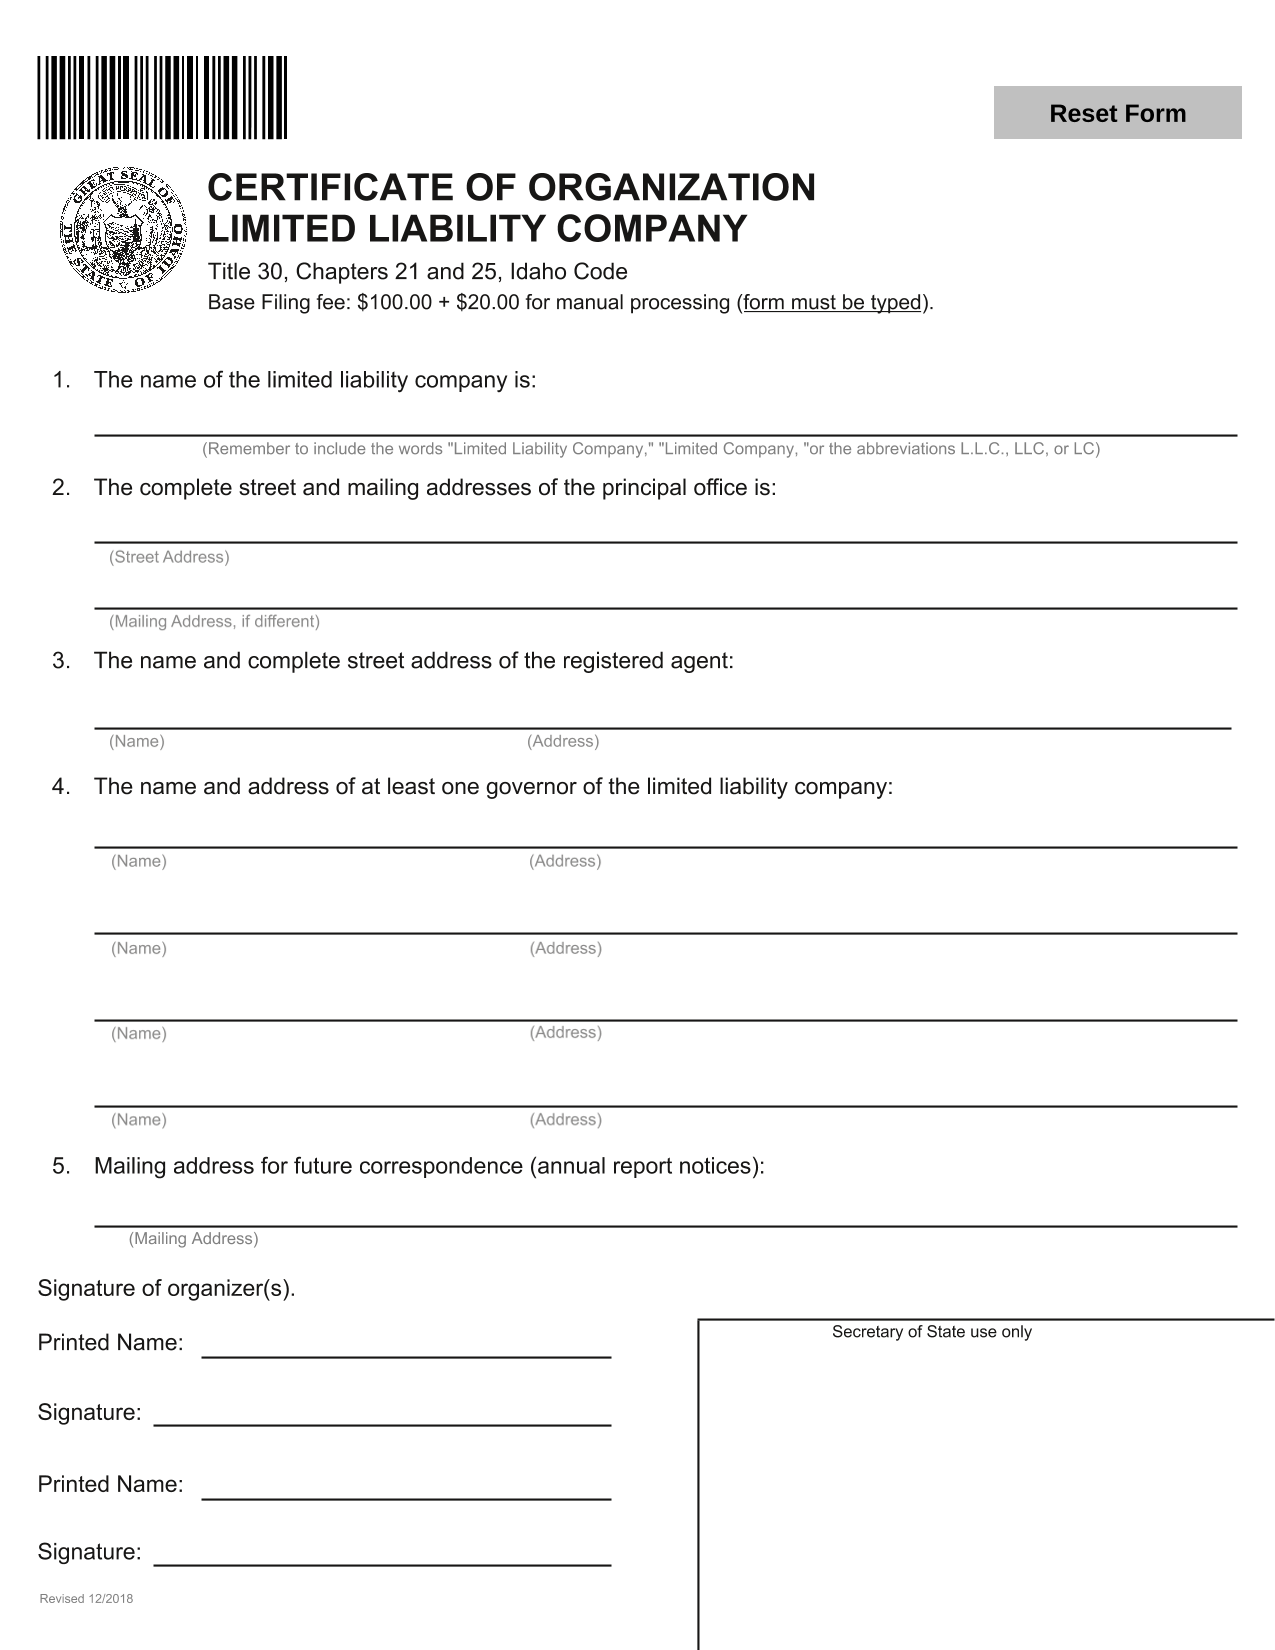 Idaho LLC Certificate of Organization